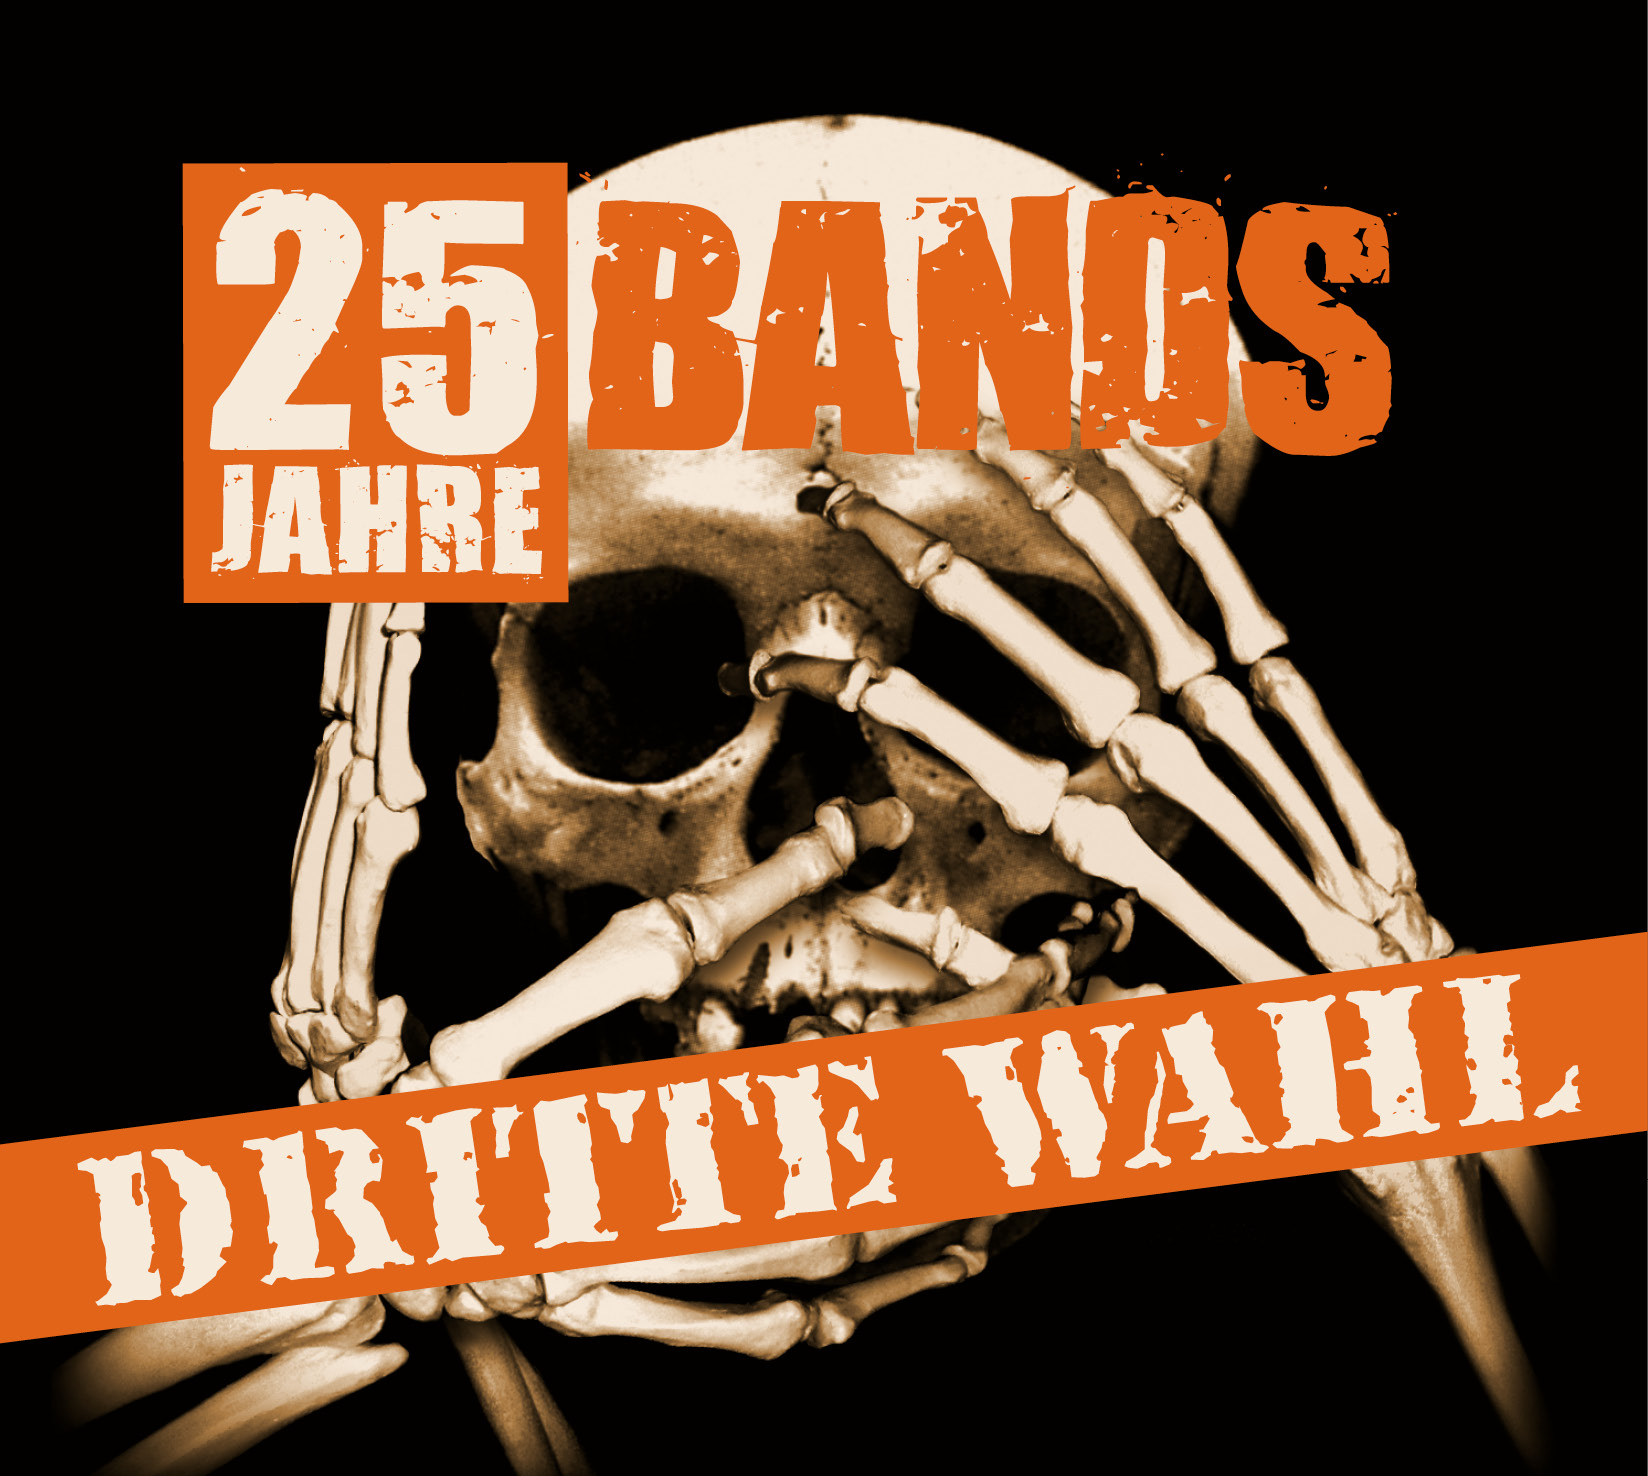 Dritte Wahl - 25 Jahre - 25 Bands - Cover